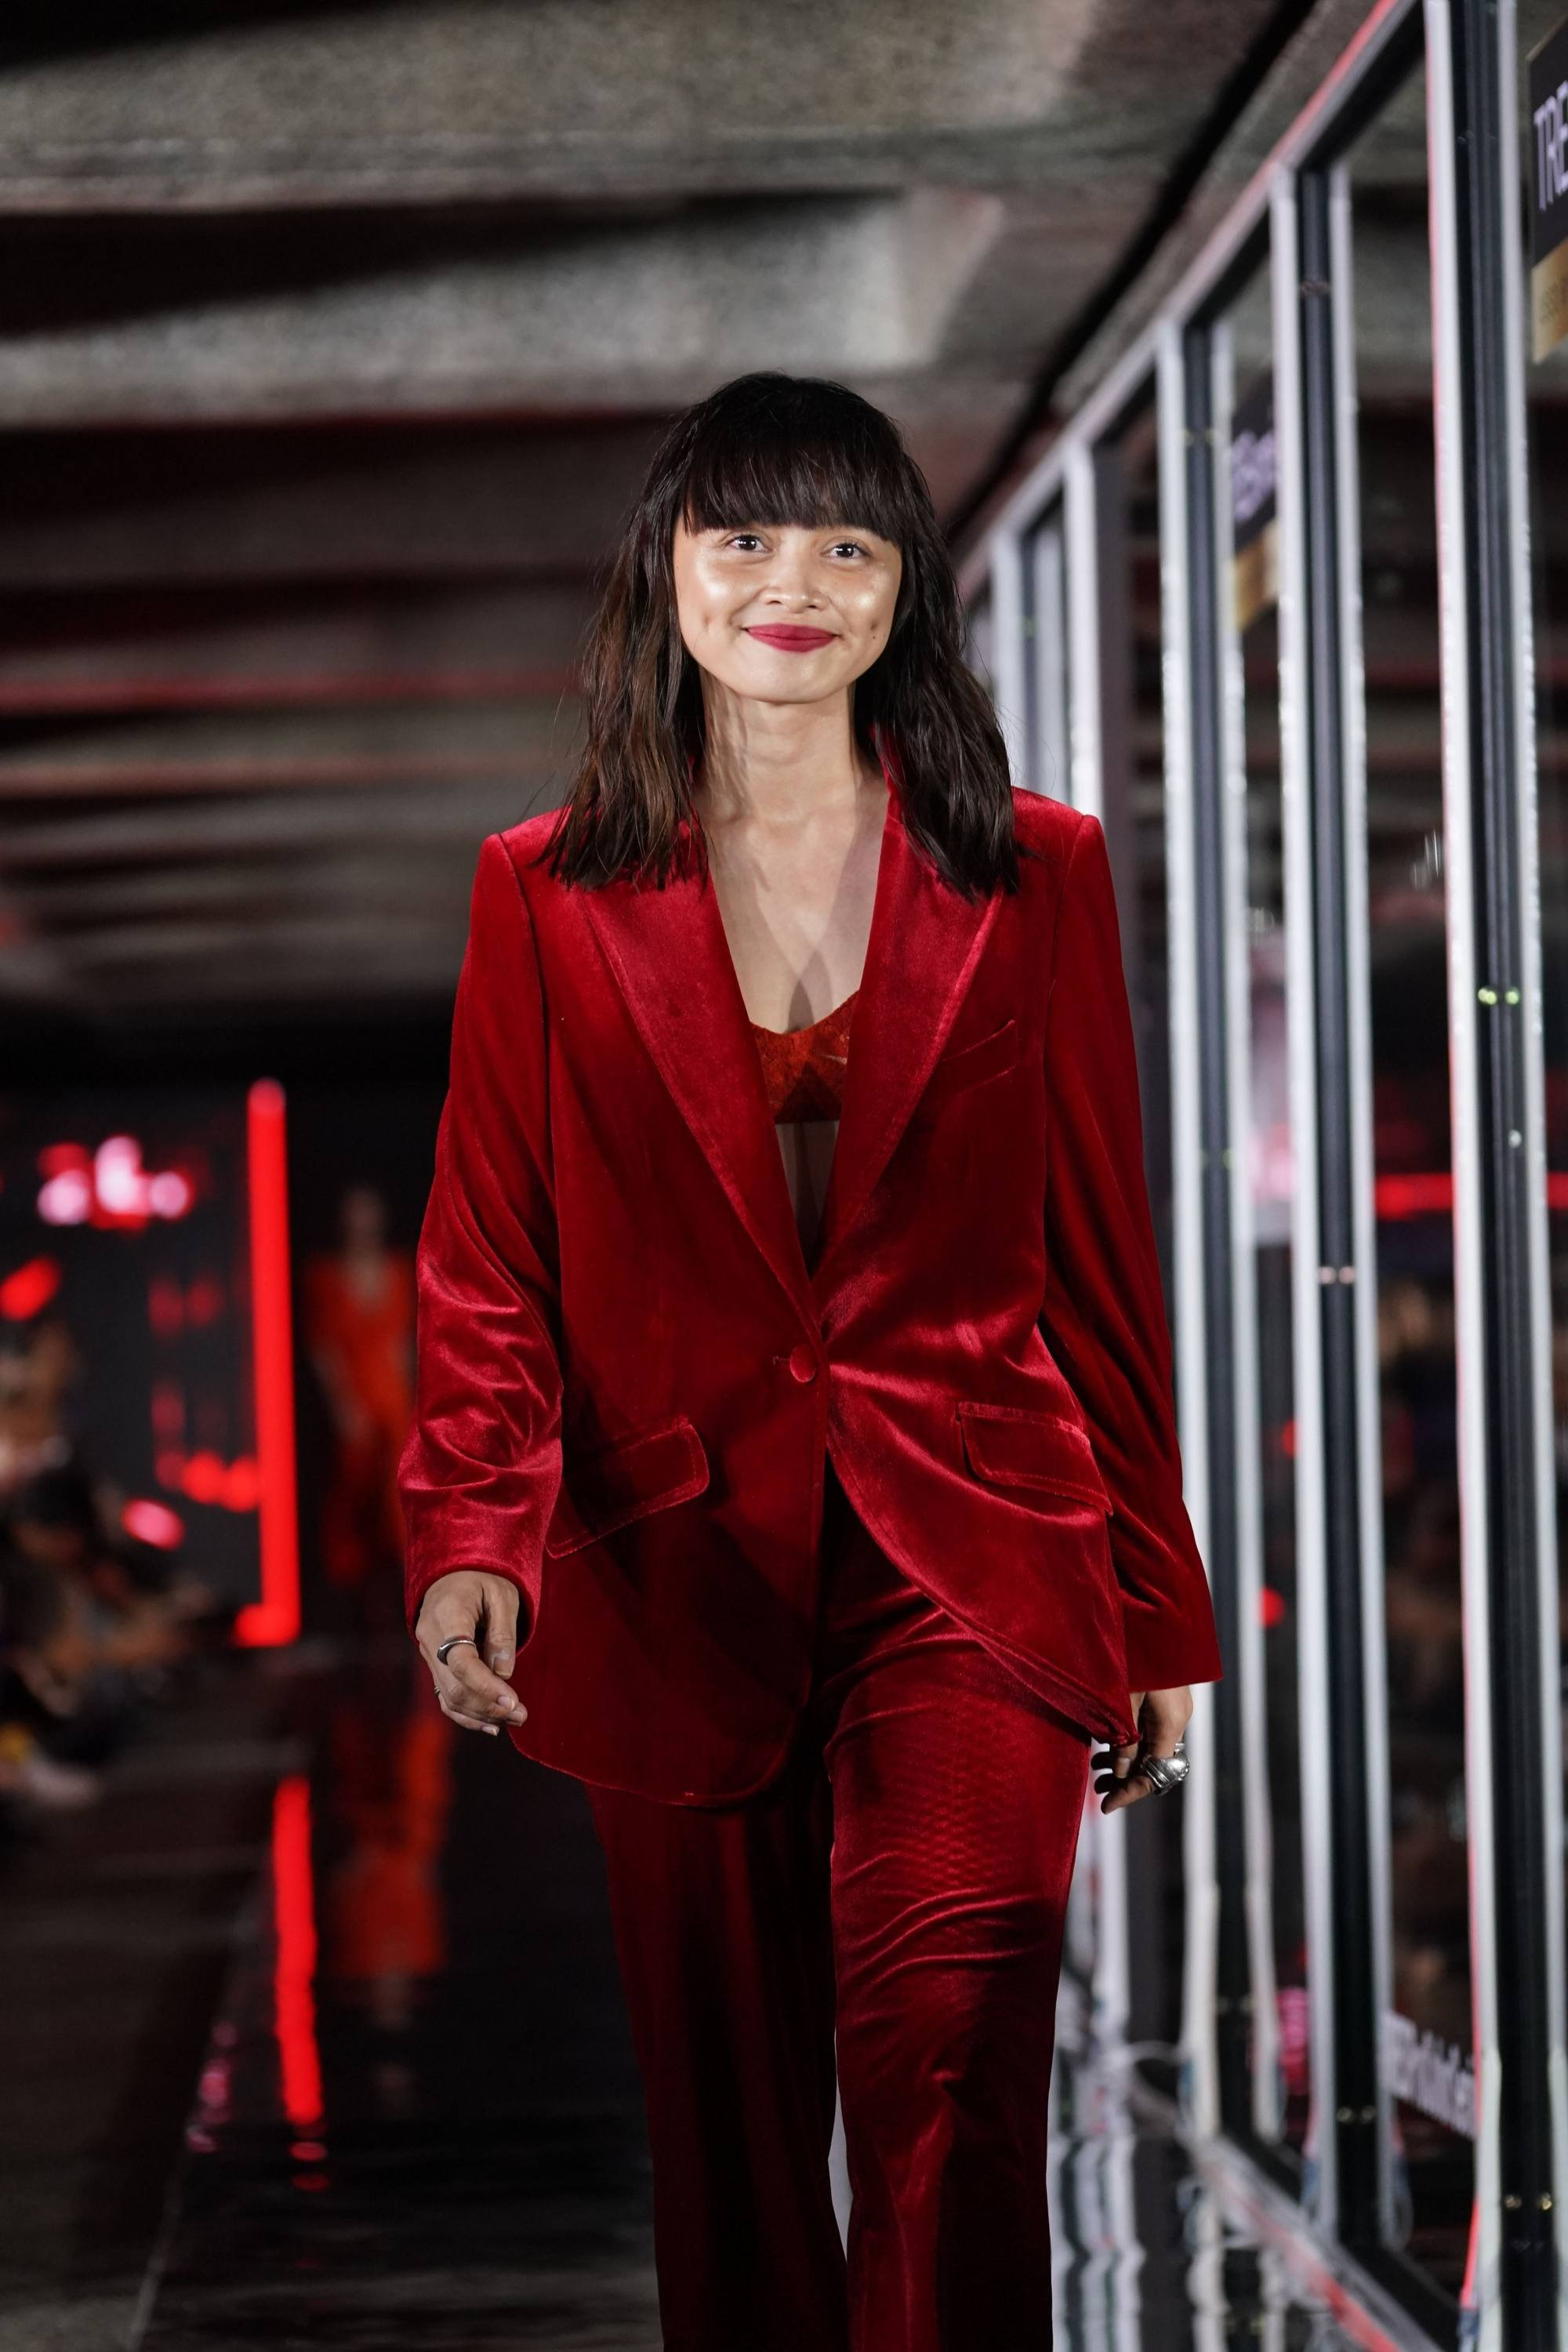 TRESemme Runway 2019: Shaira Luna with brown highlights in a red ensemble